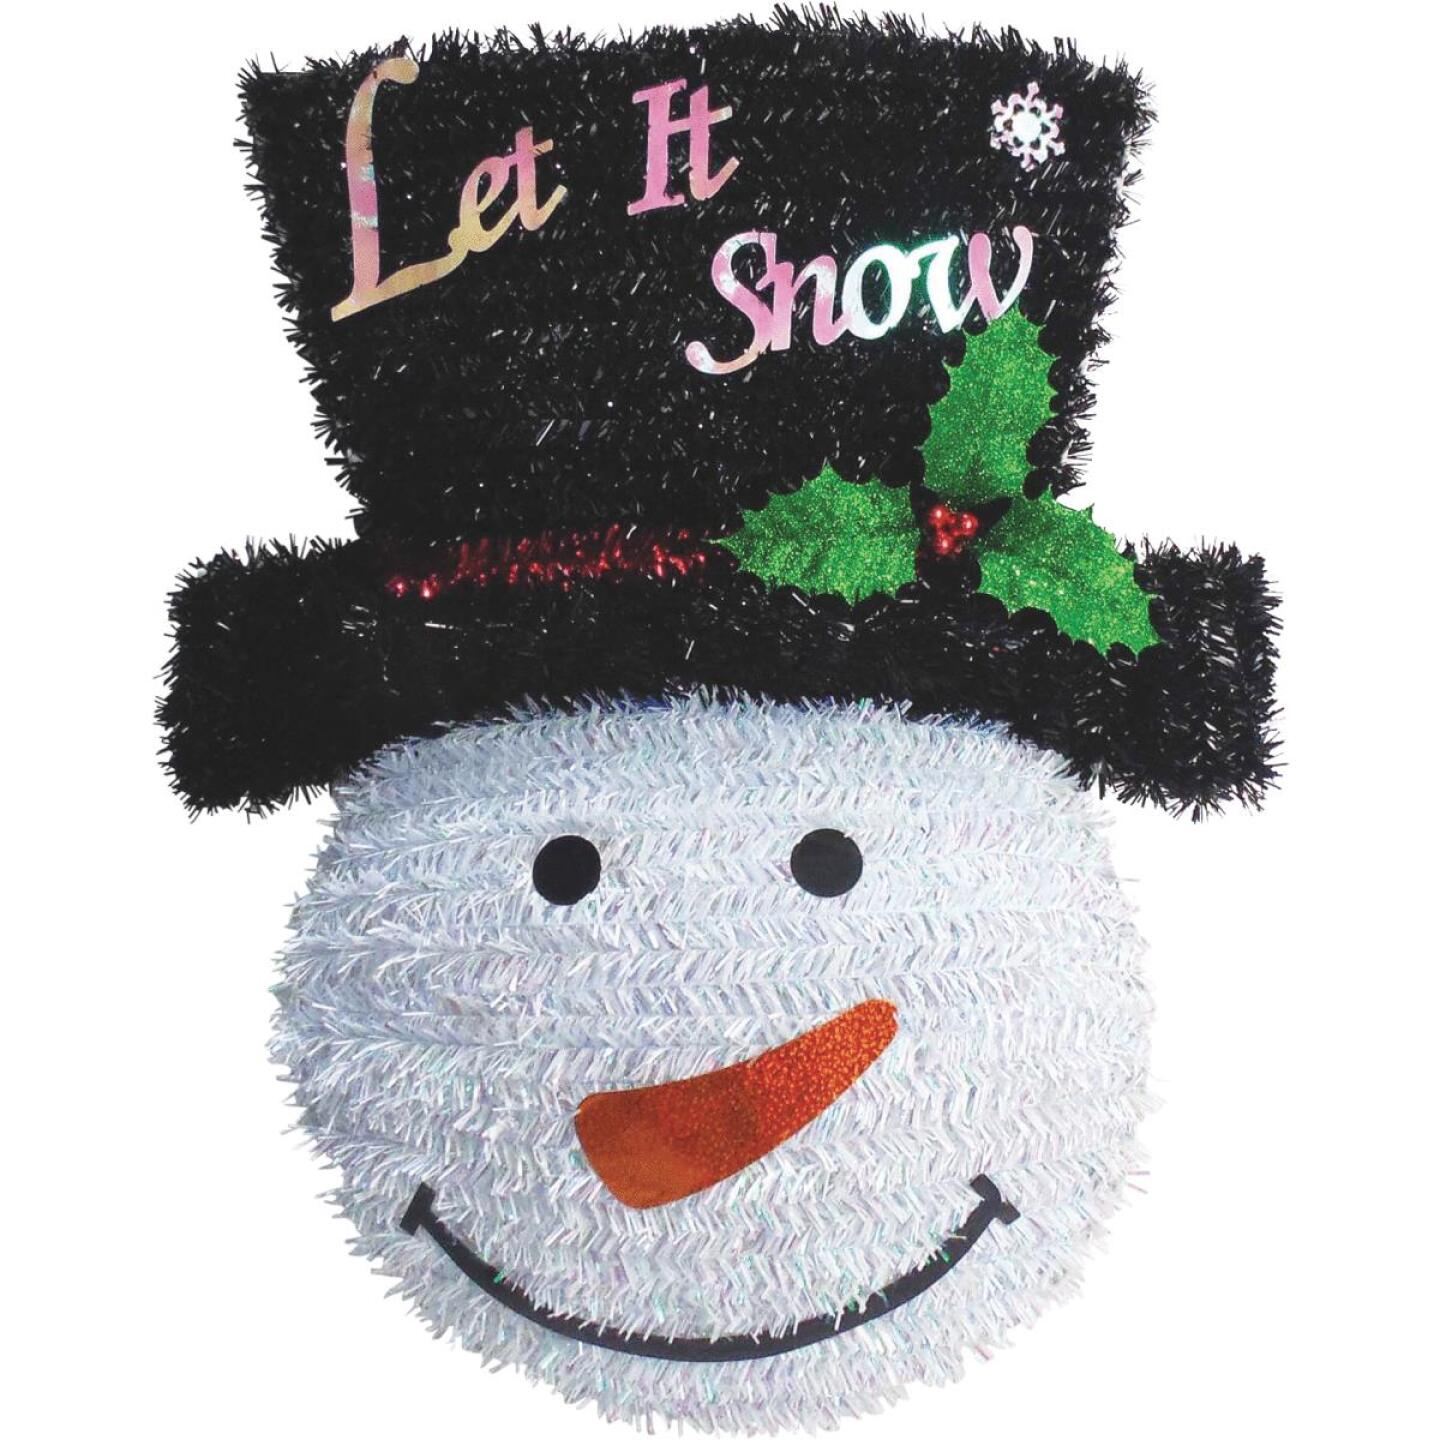 Youngcraft 18 In. White, Black, & Red Snowman Tinsel Wreath Image 3